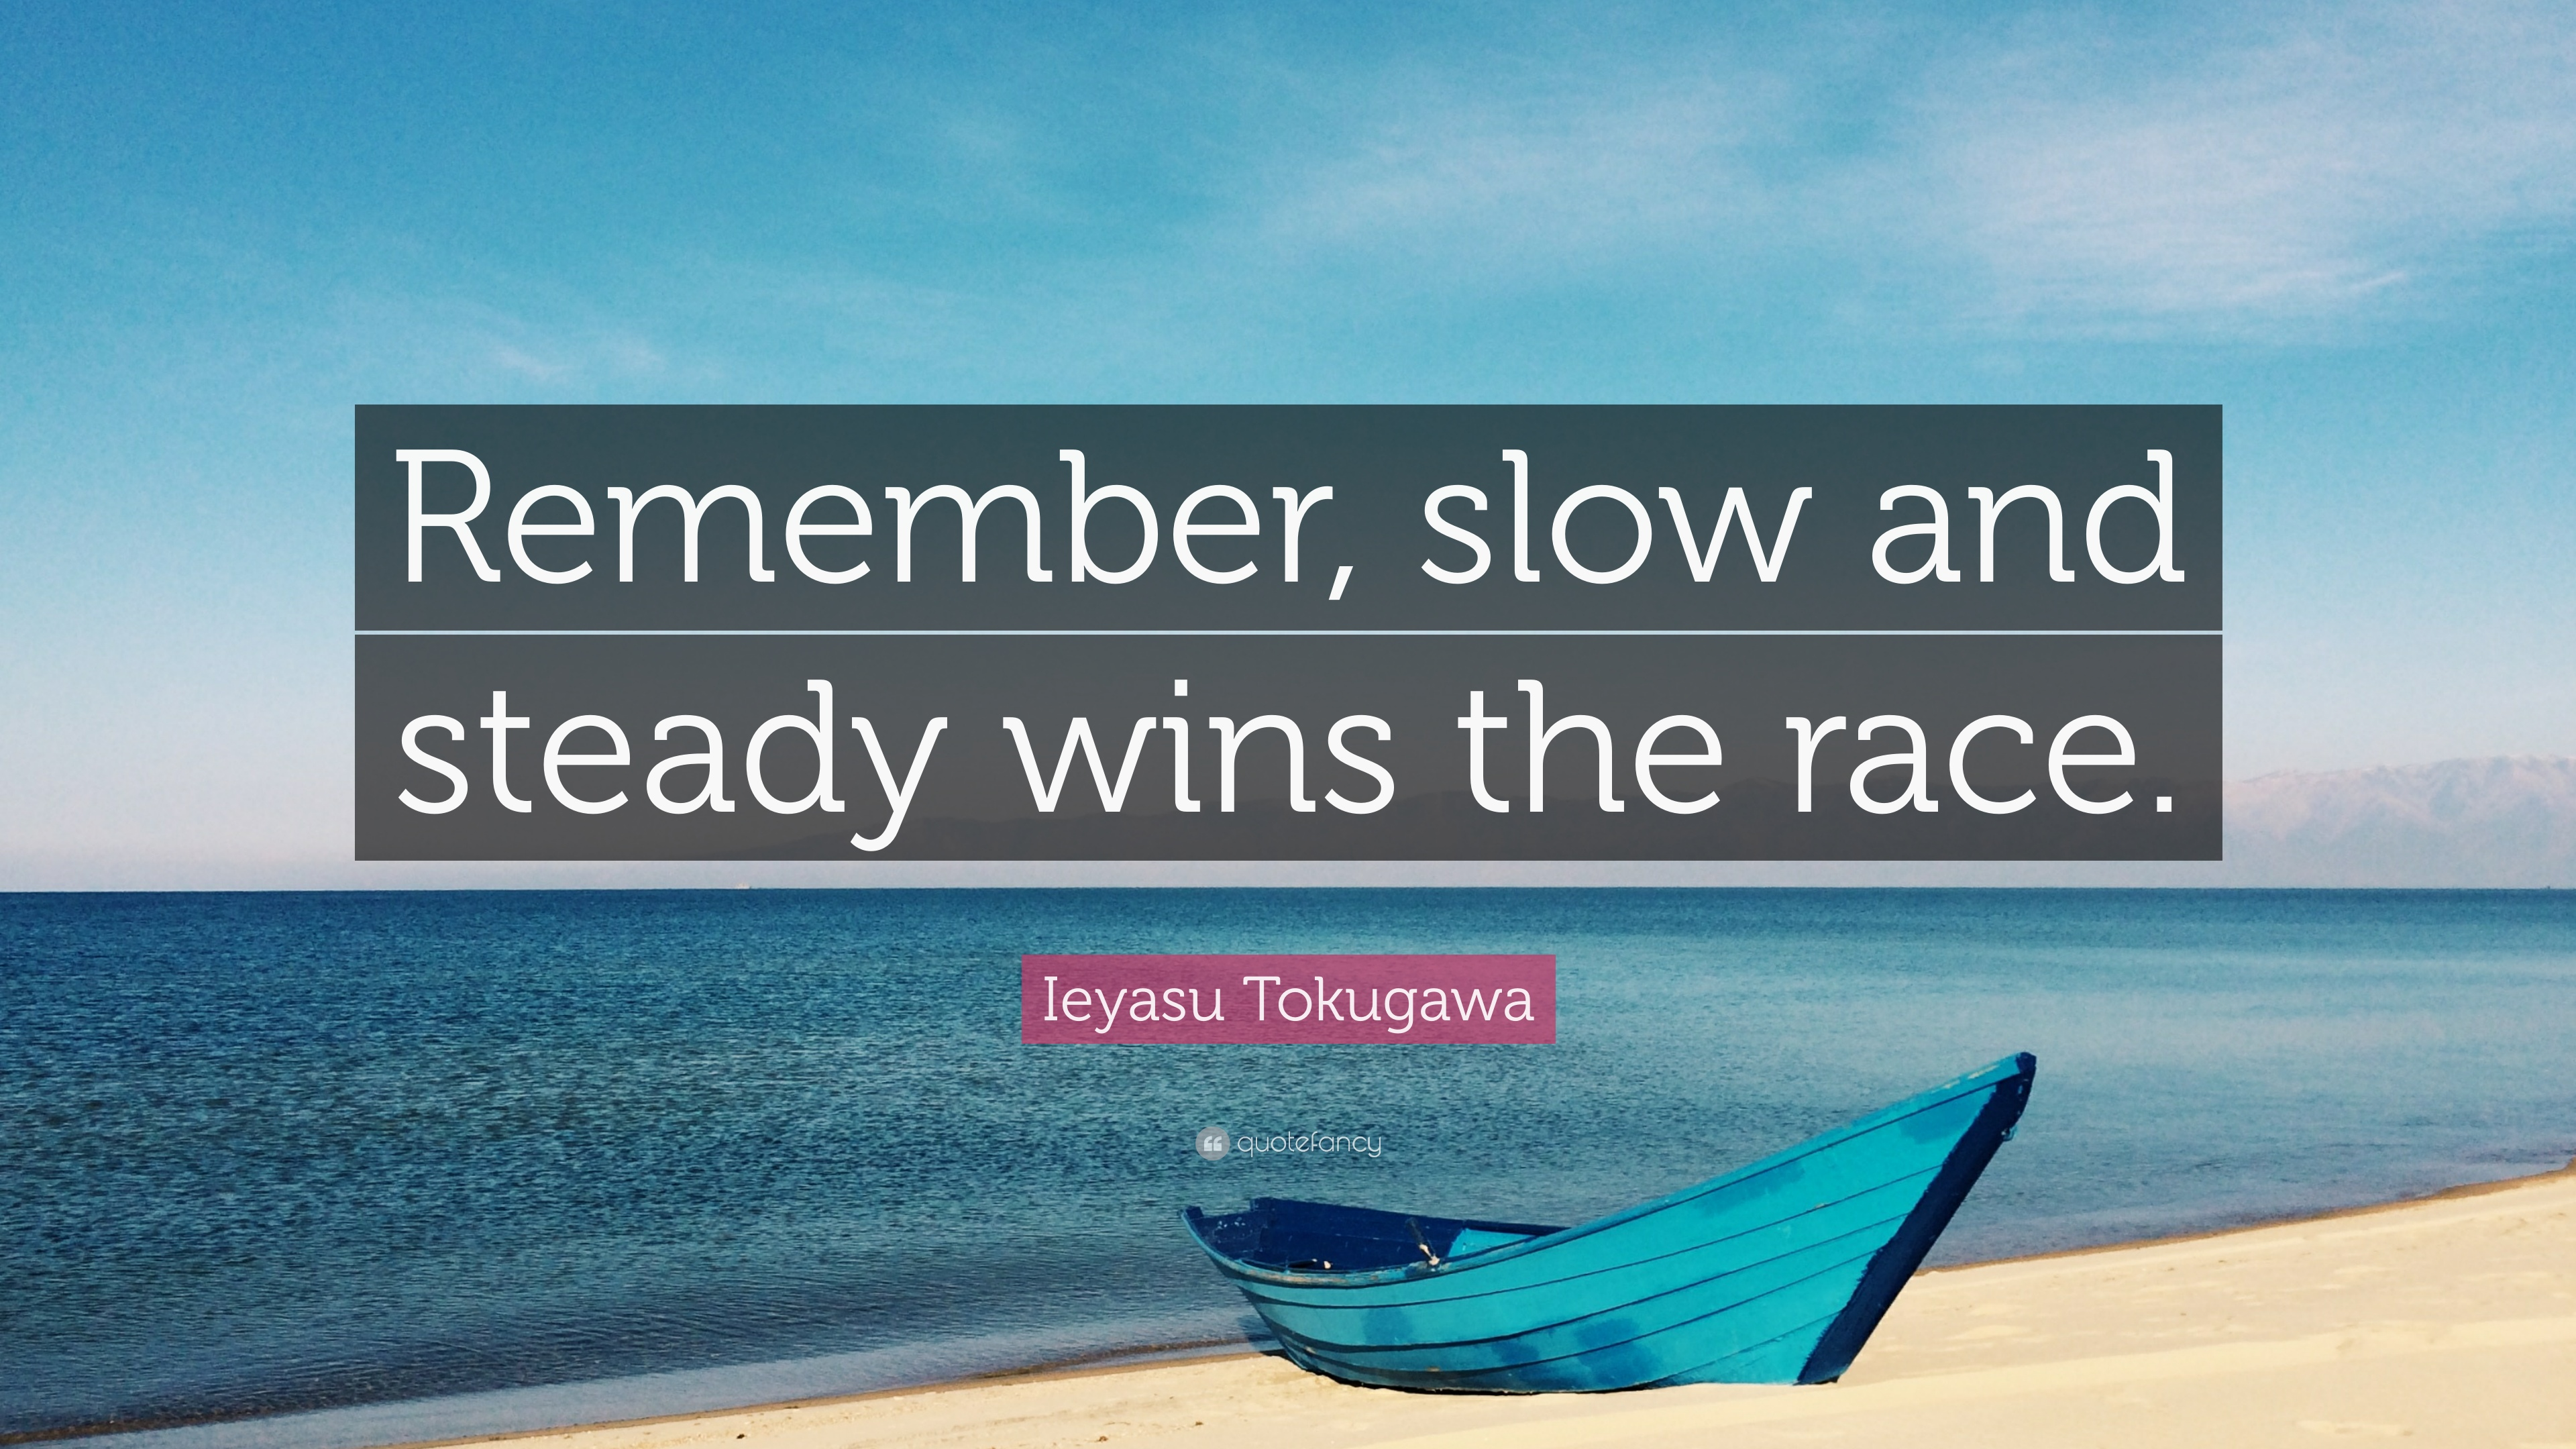 slow and steady wins the race The story concerns a hare who ridicules a slow the tortoise and the hare algorithm is an near the end of the race, thus allowing the tortoise to win.